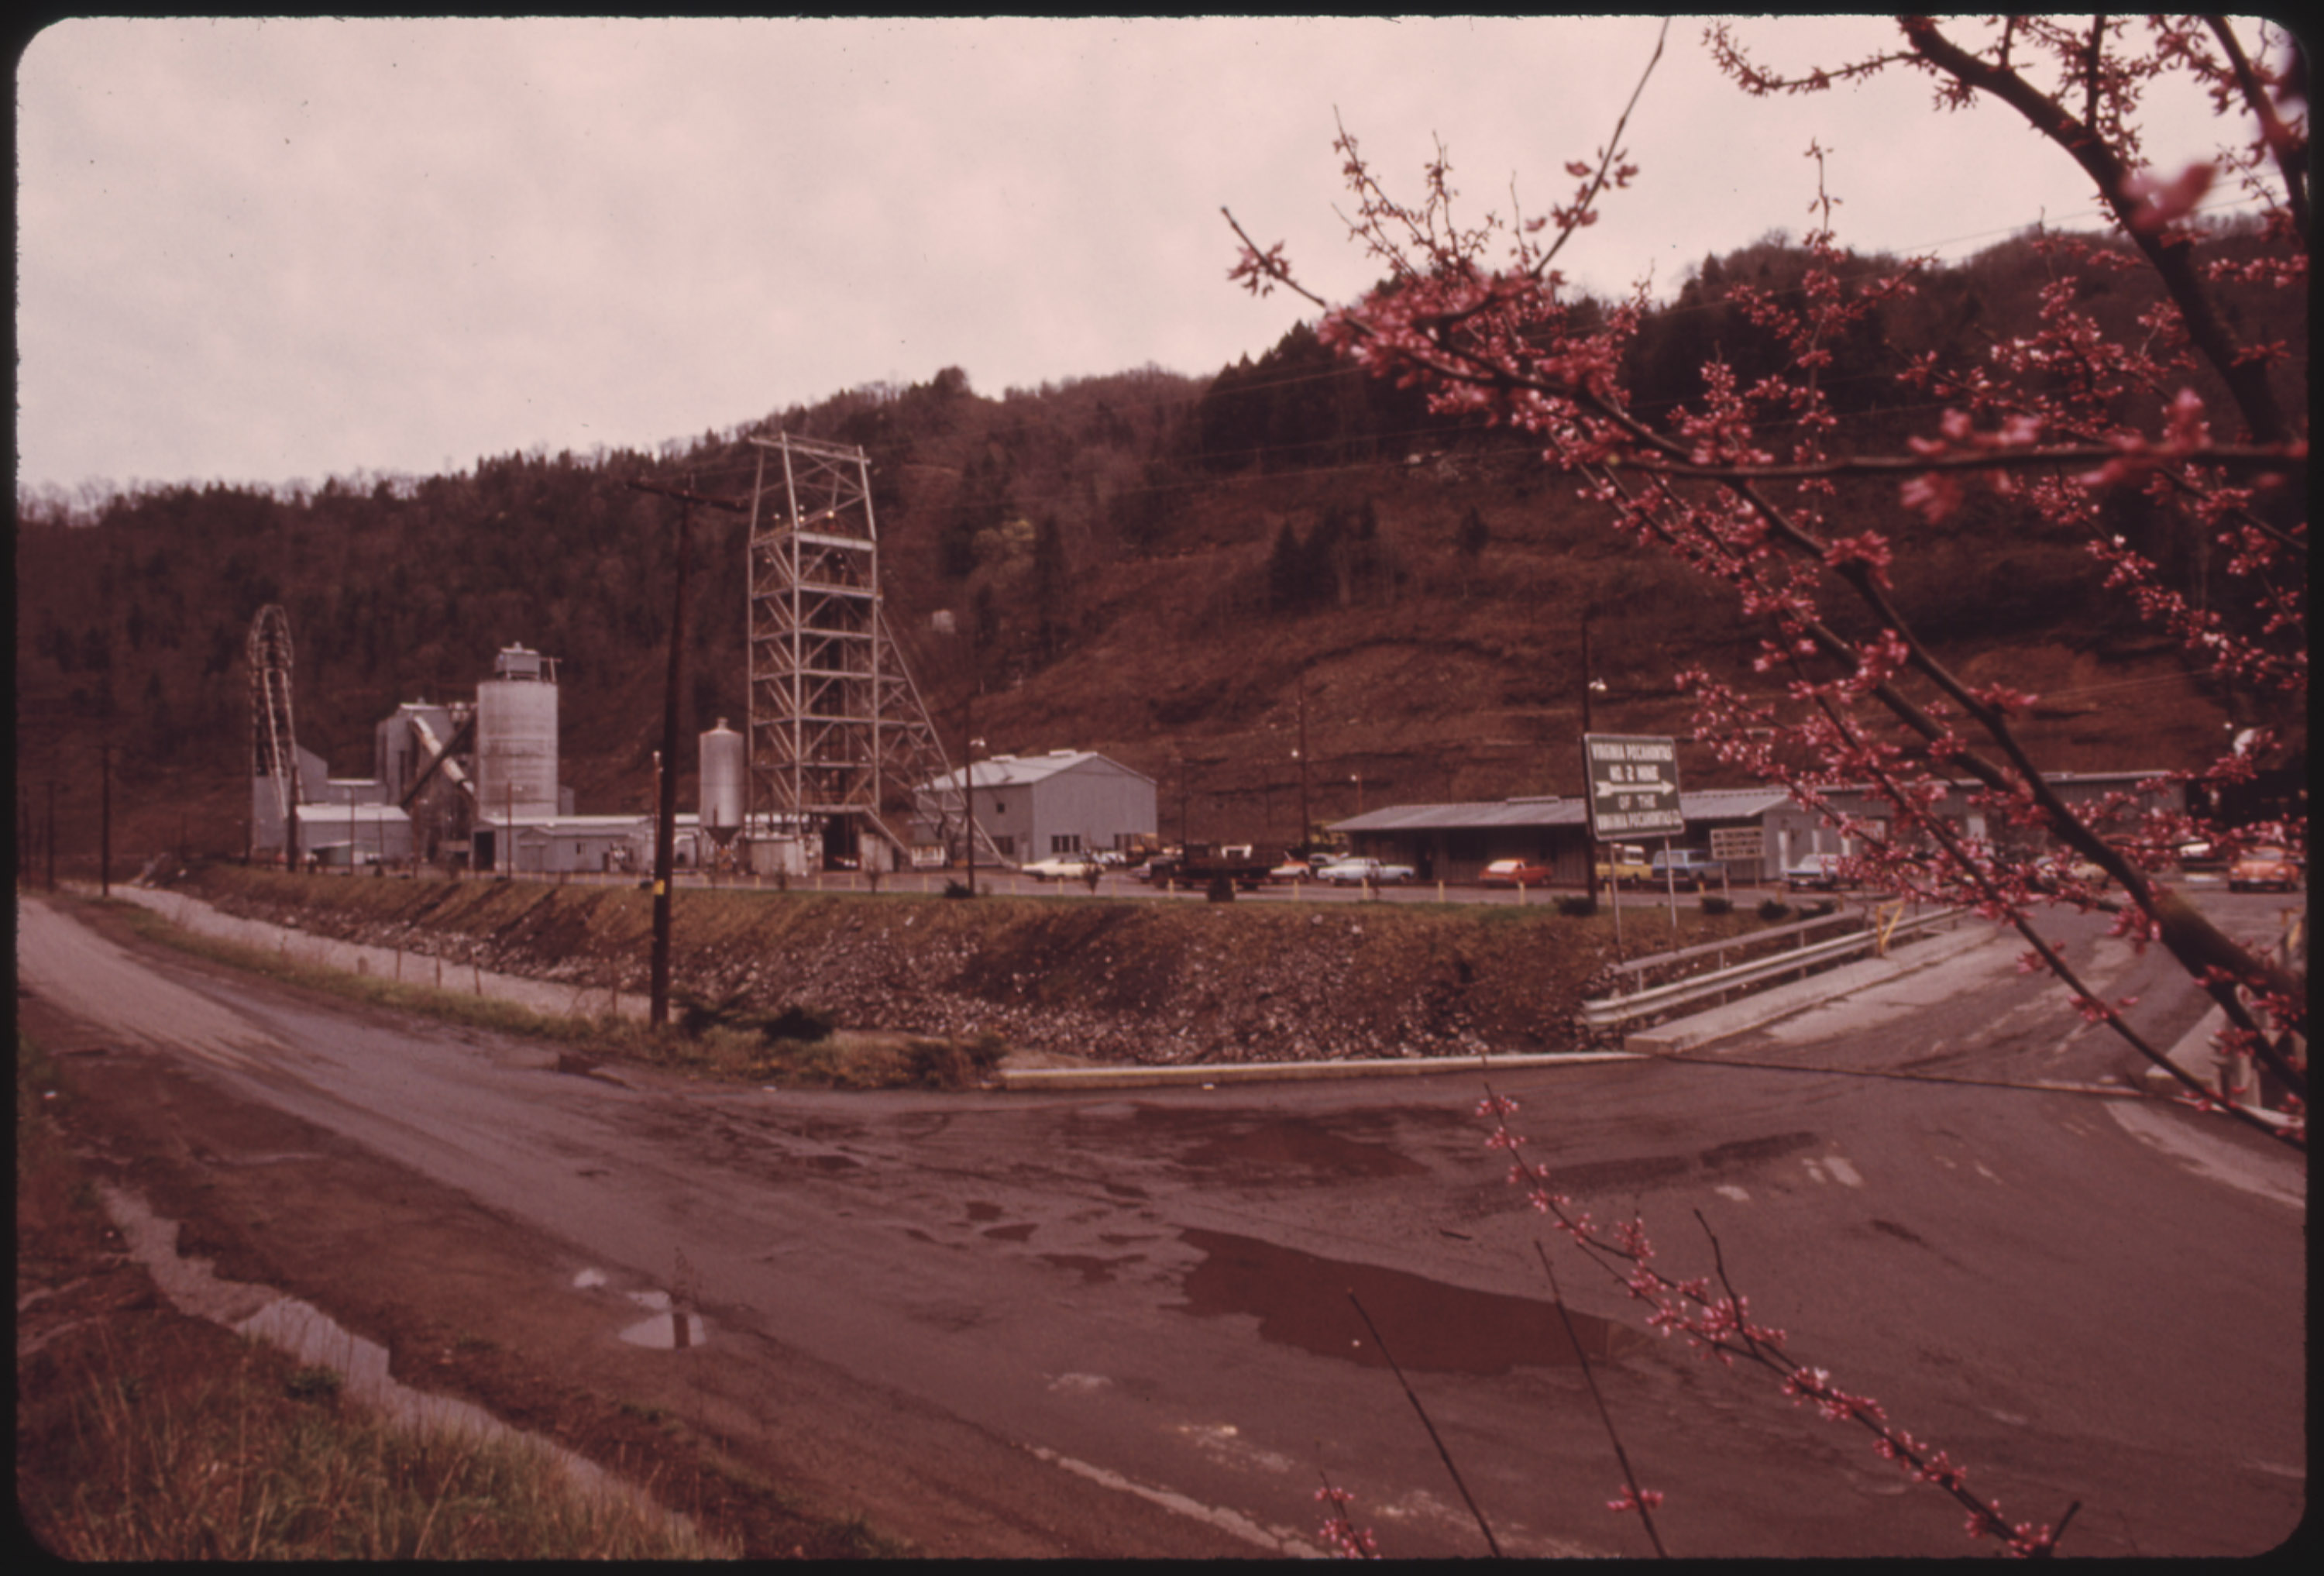 Picture of Virginia-Pocahontas Mine #2 near Richlands Virginia, in a Picturesque Setting with a Red Bud Tree in the Foreground 04/1974